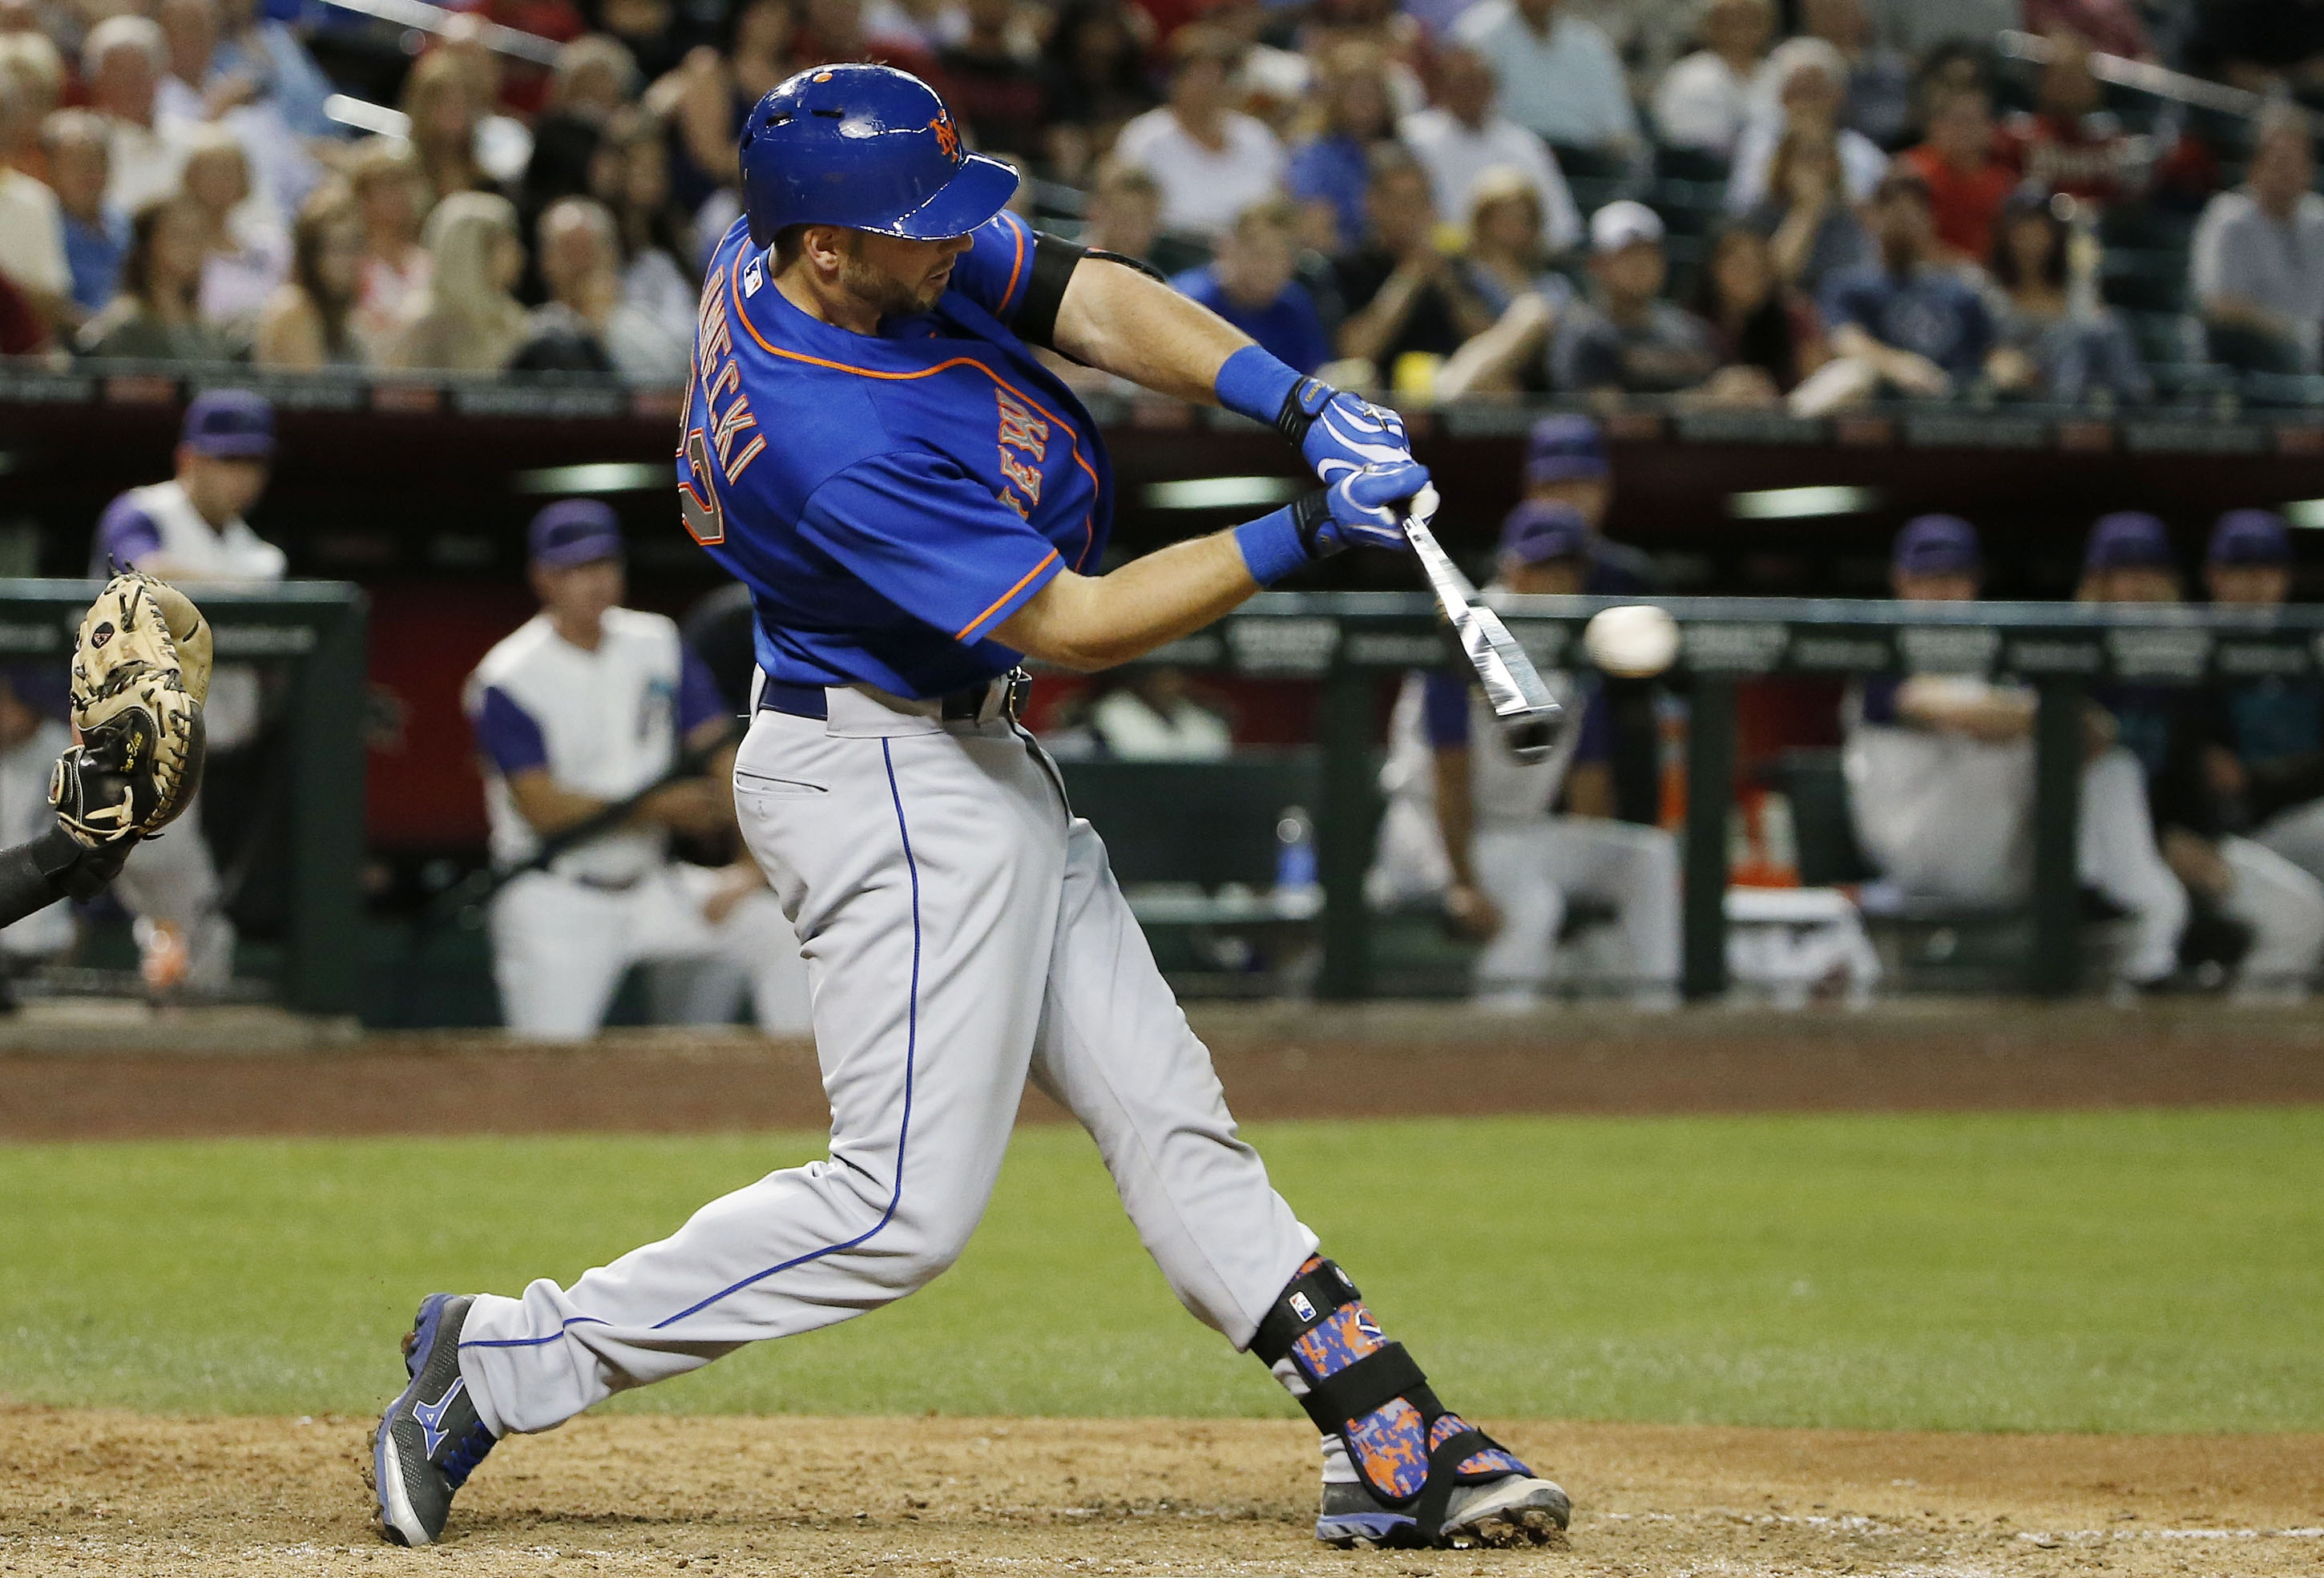 New York Mets' Kevin Plawecki connects for a two-run double against the Arizona Diamondbacks during the sixth inning of a baseball game Thursday, June 4, 2015, in Phoenix. (AP Photo/Ross D. Franklin)